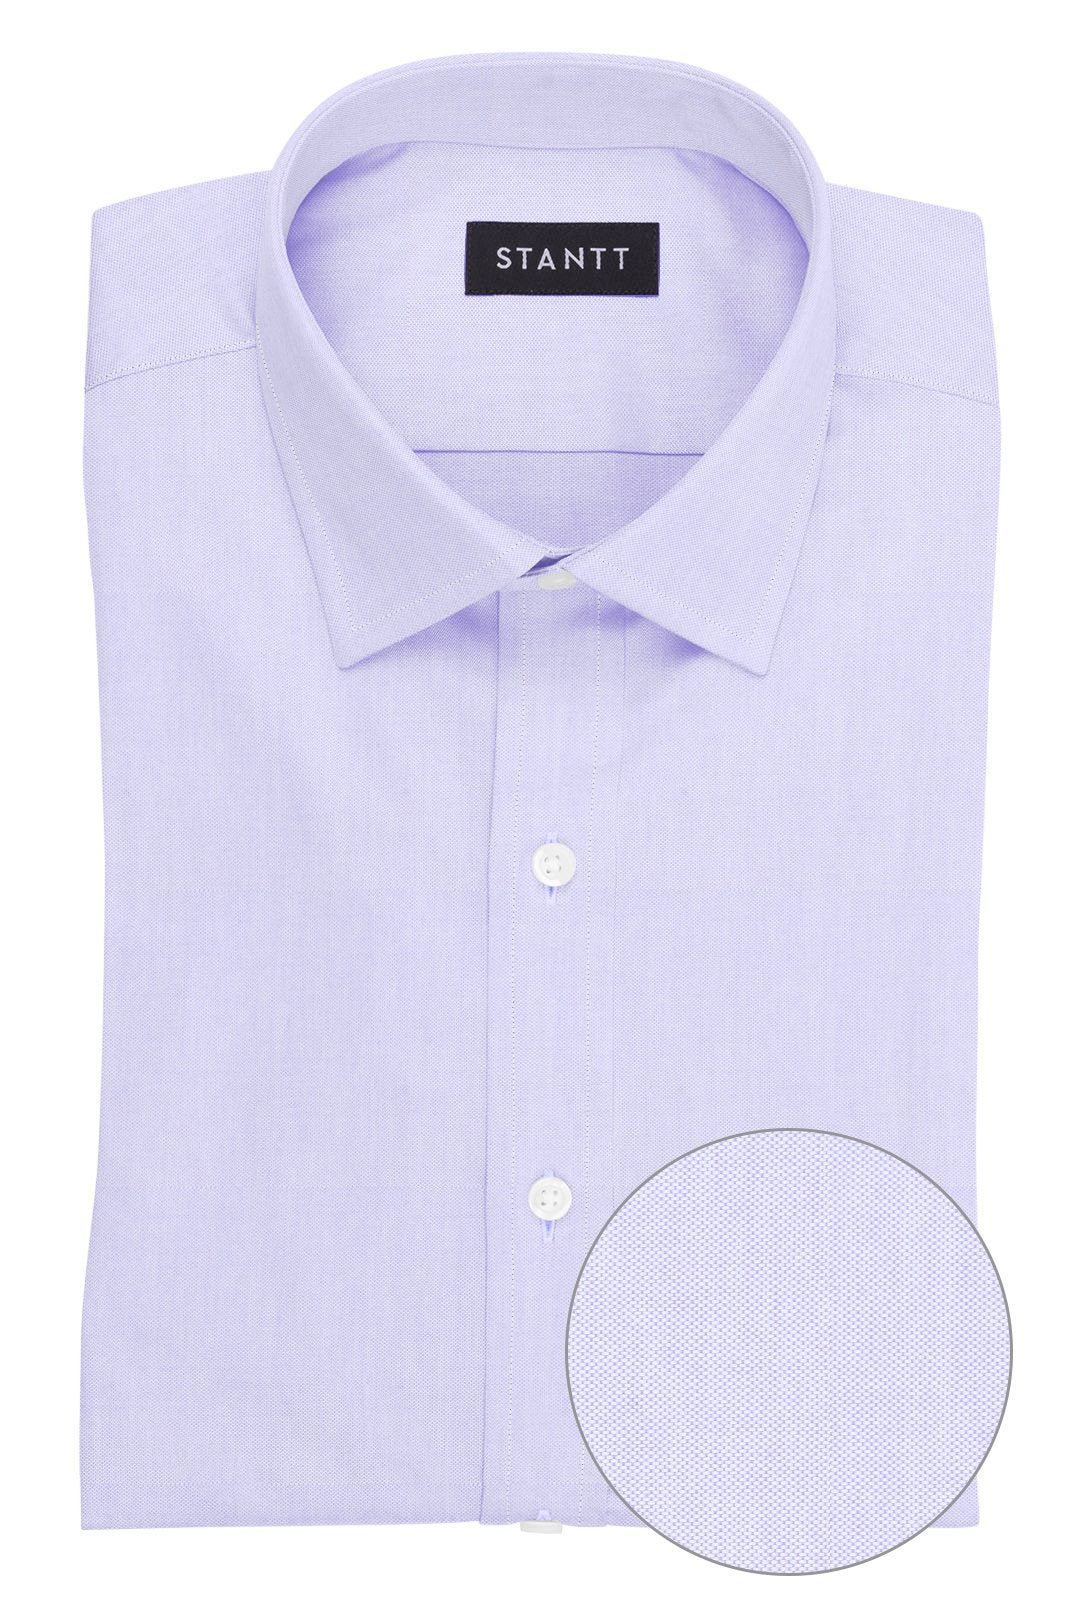 Lavender Pinpoint Oxford: Modified-Spread Collar, Barrel Cuff